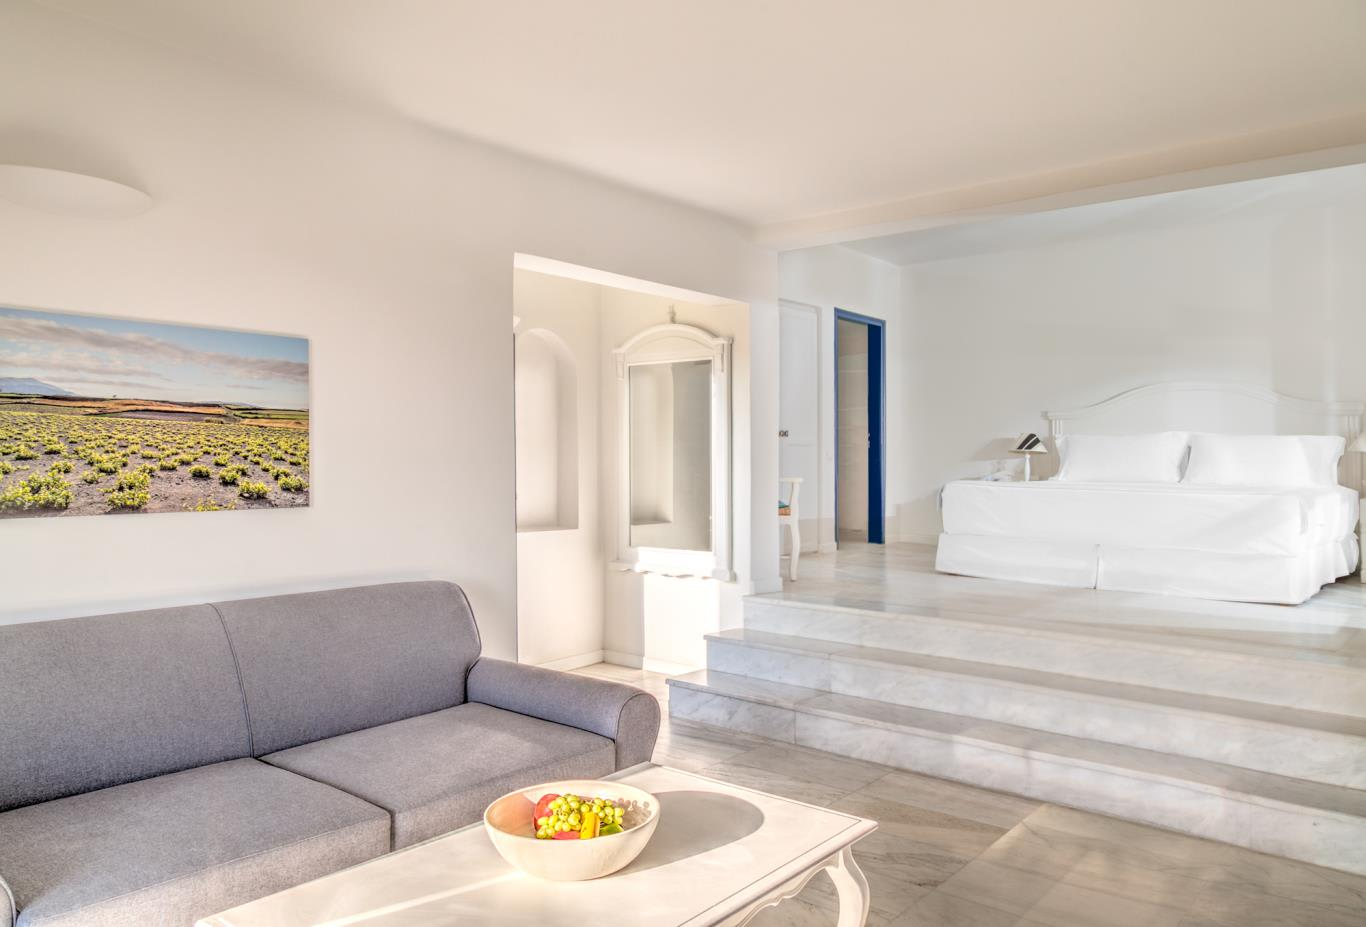 Aegean Suite overview